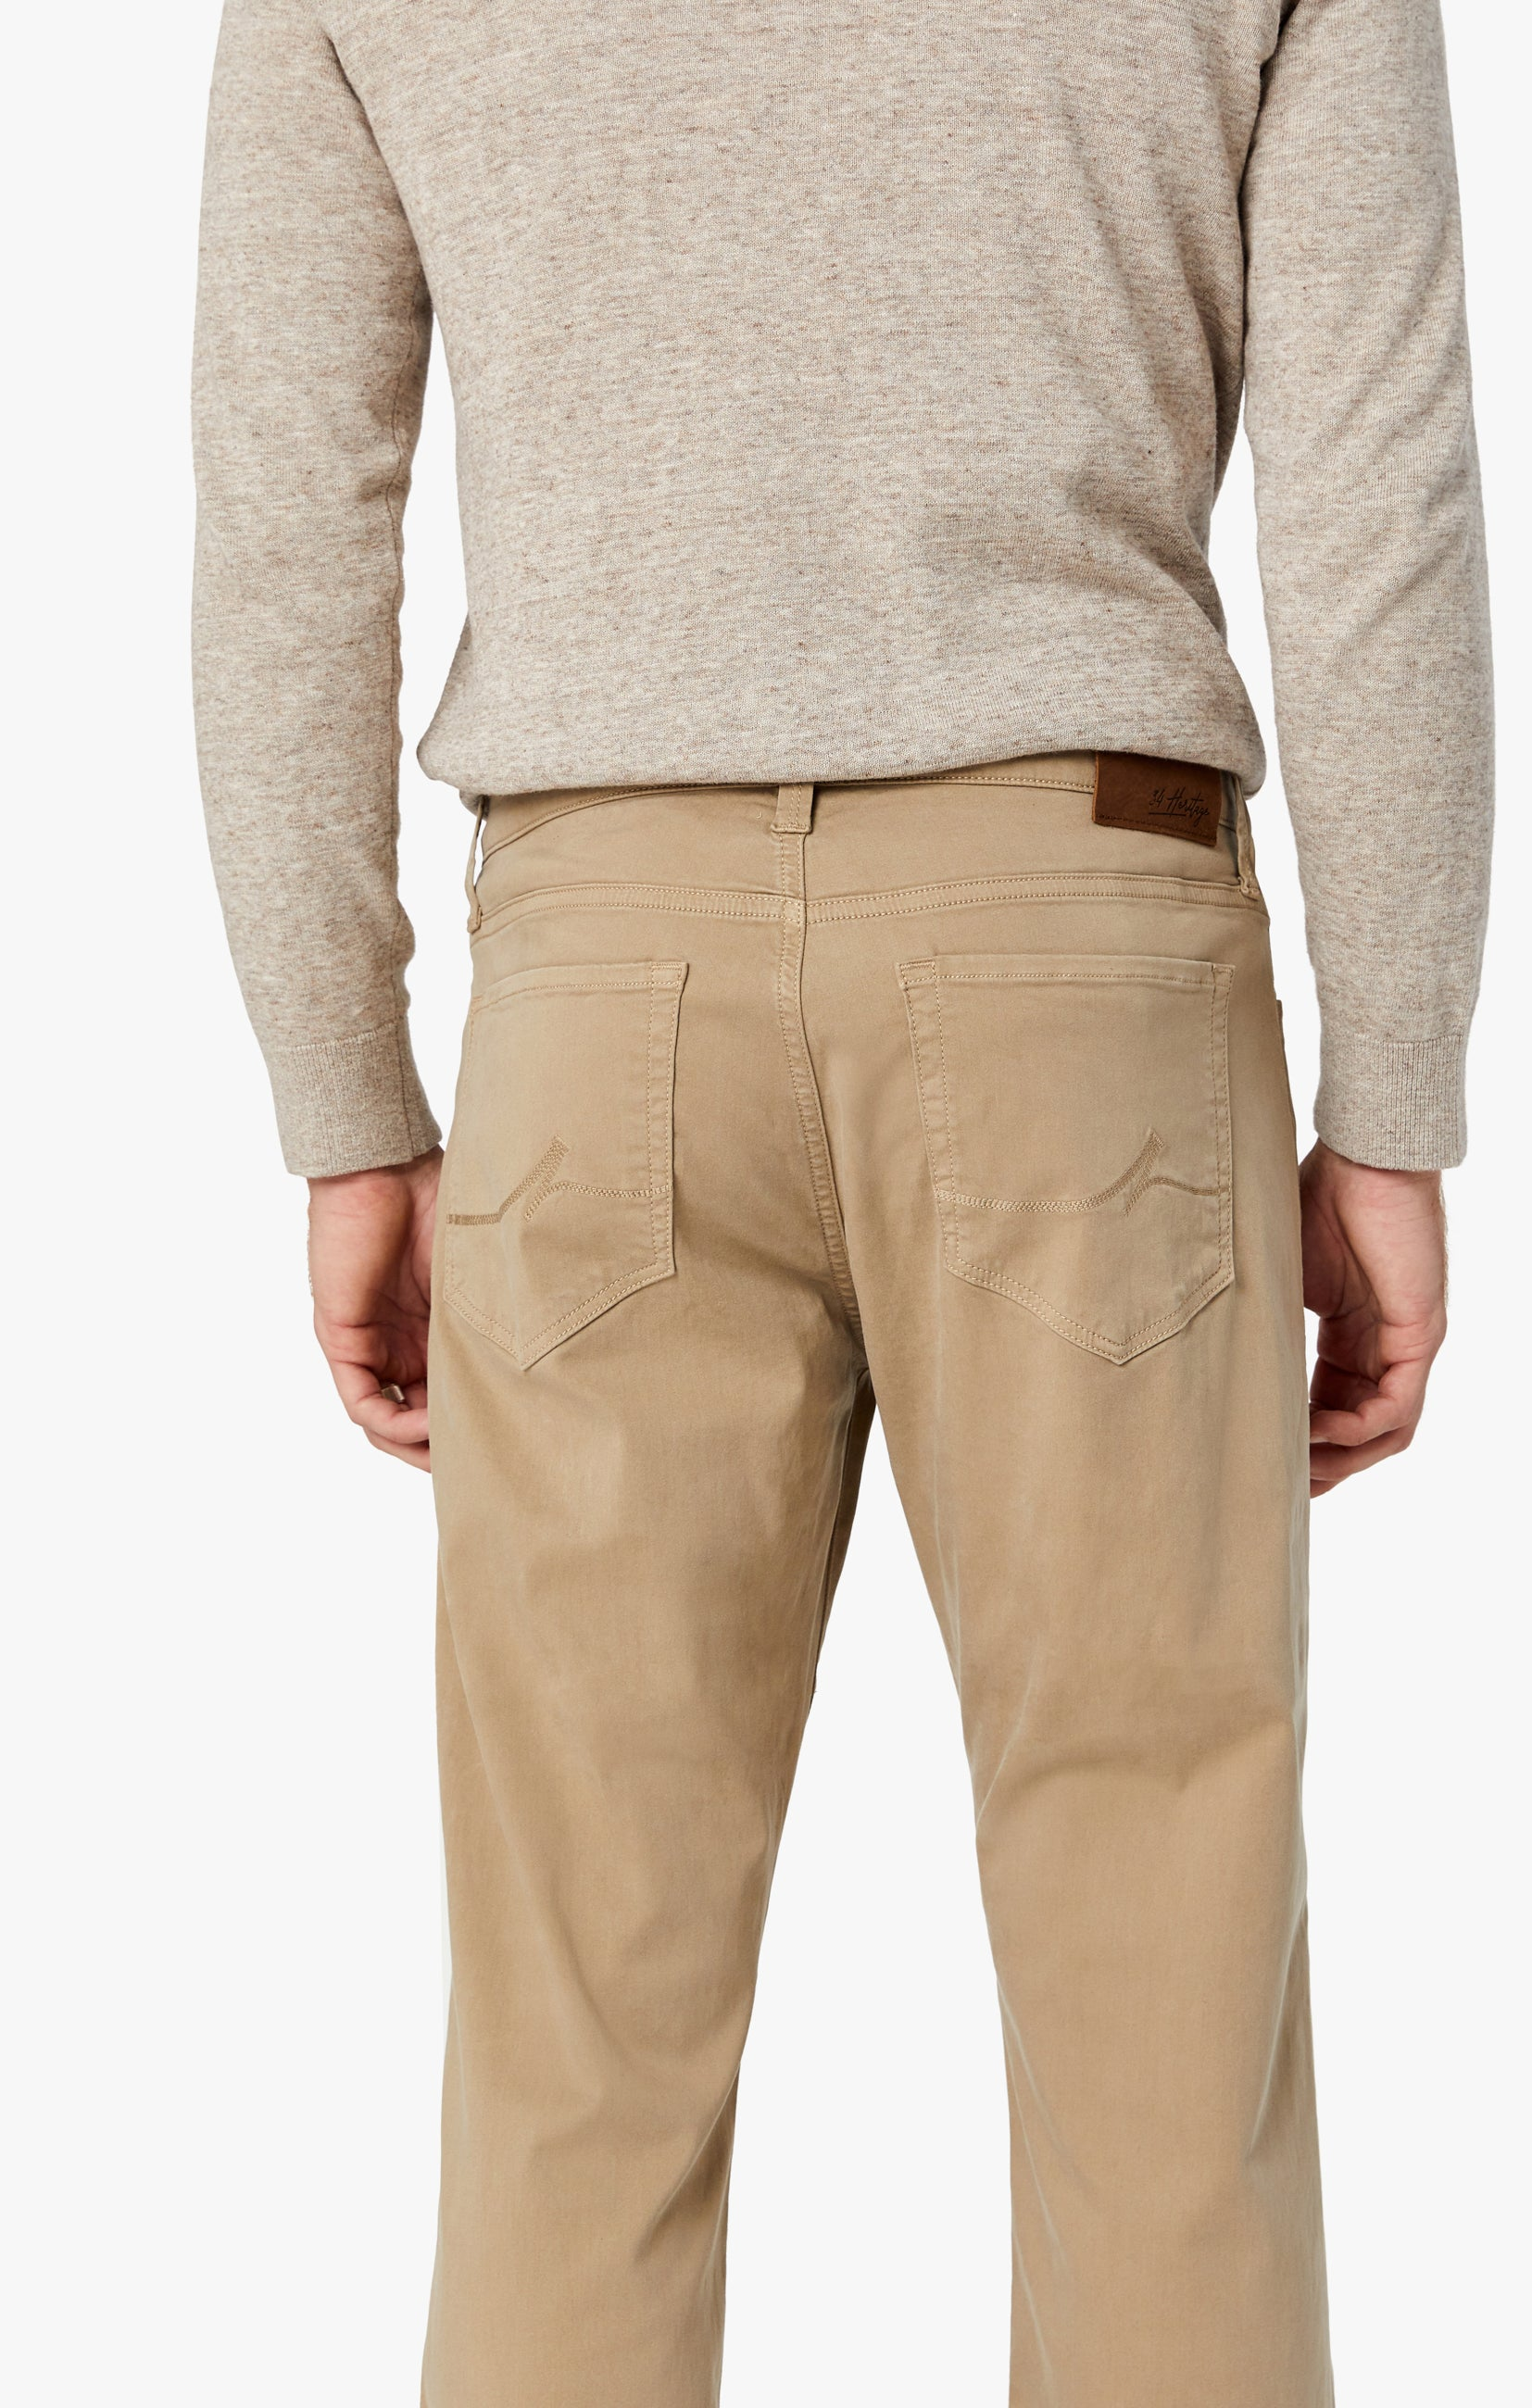 Courage Straight Leg Pants in Sand Twill Image 8